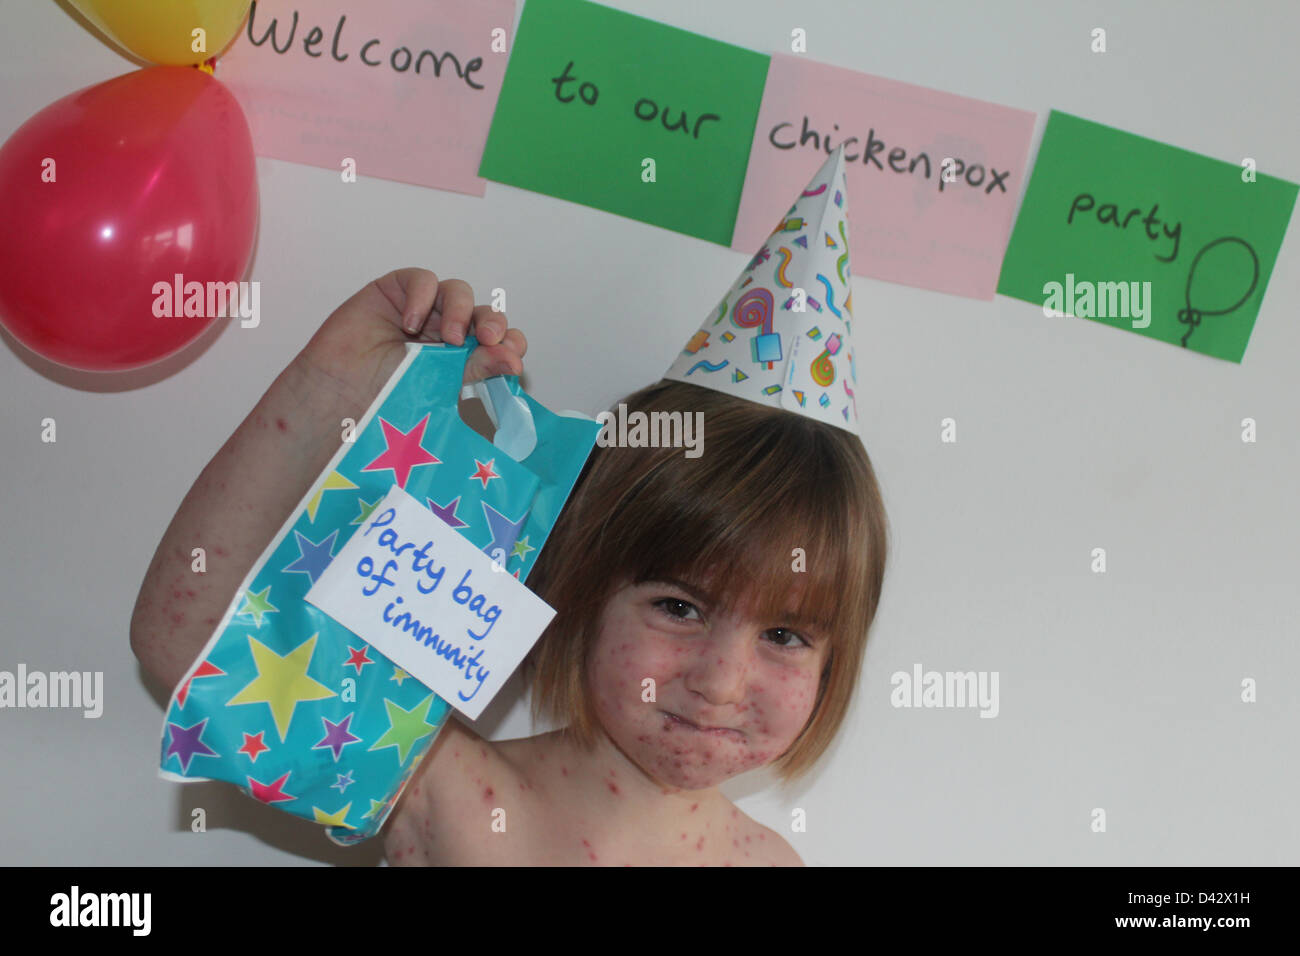 Girl having a chickenpox party - Stock Image